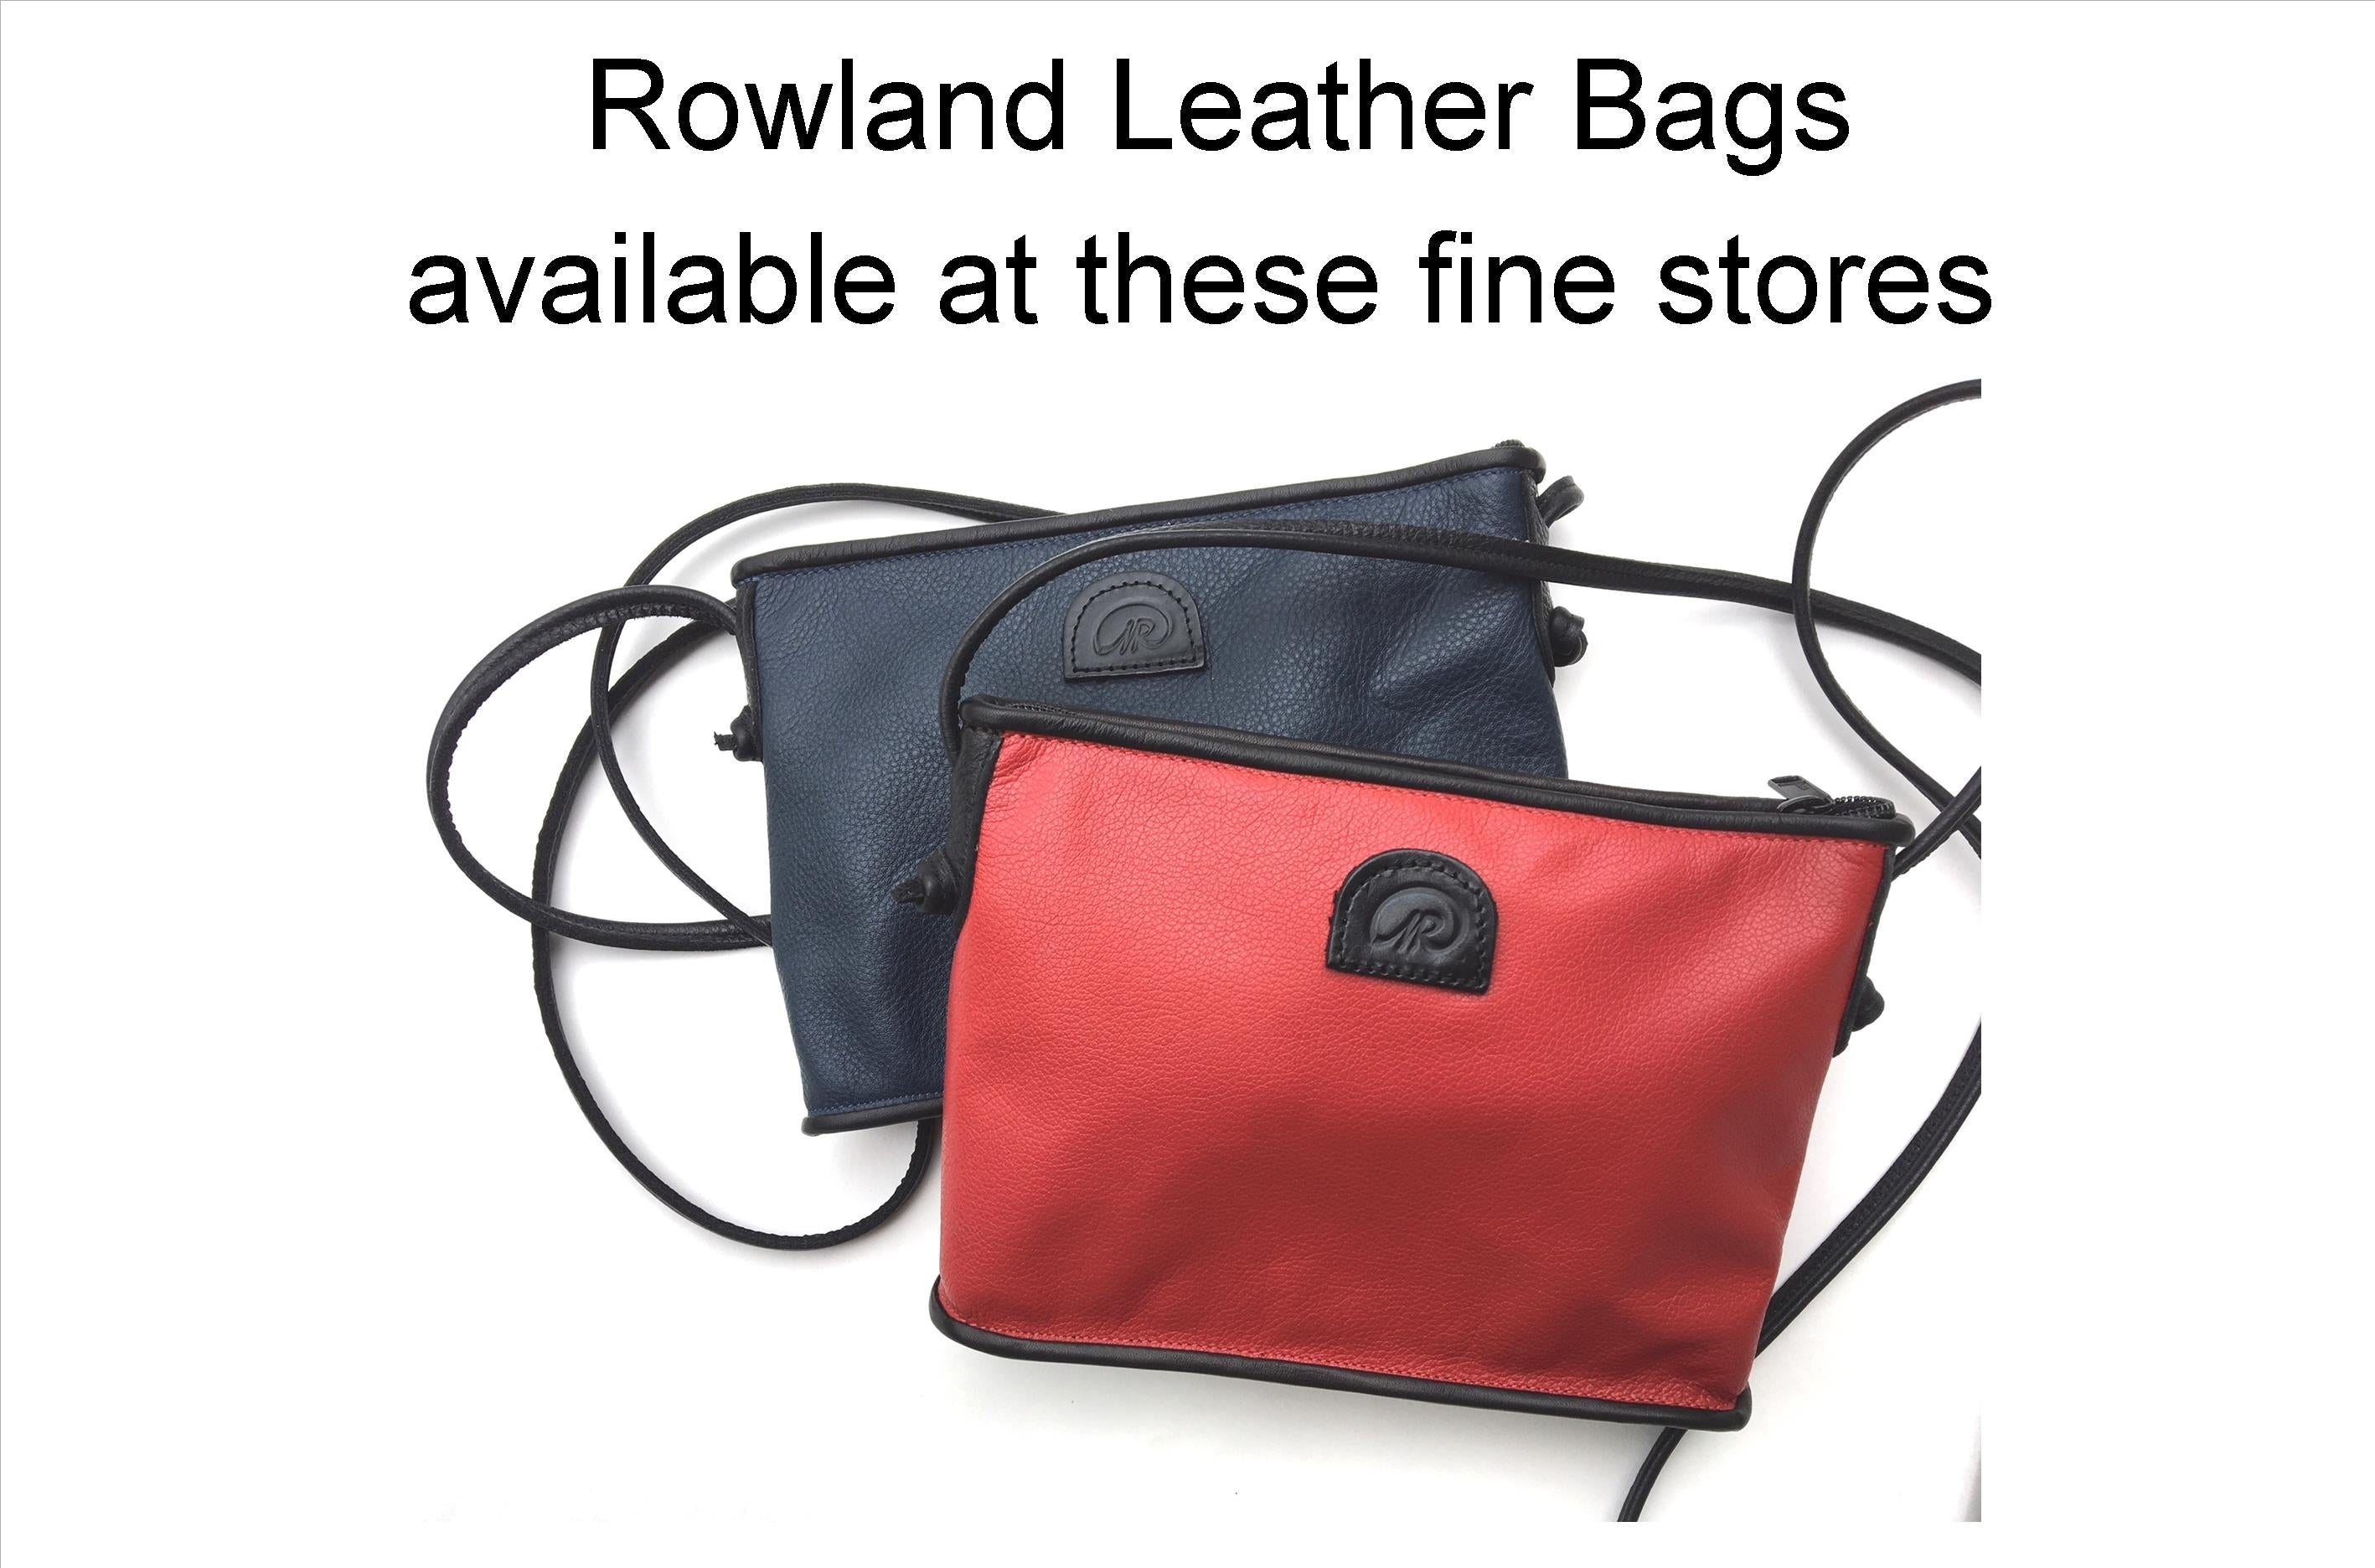 ROWLAND LEATHER